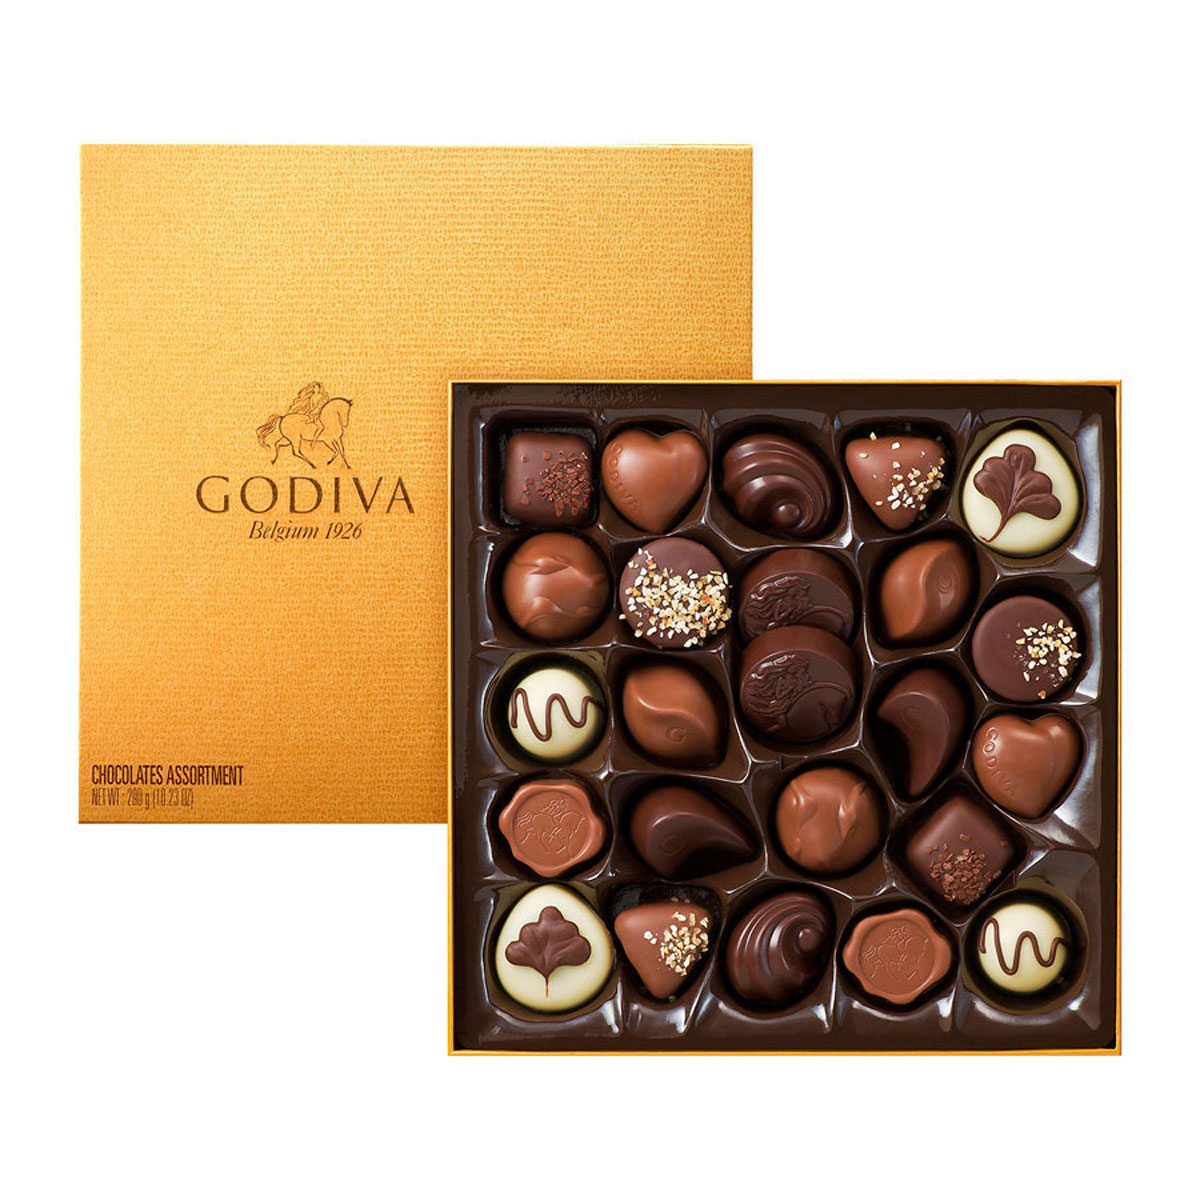 Godiva discovery hamper delivery in europe others godiva for Go diva